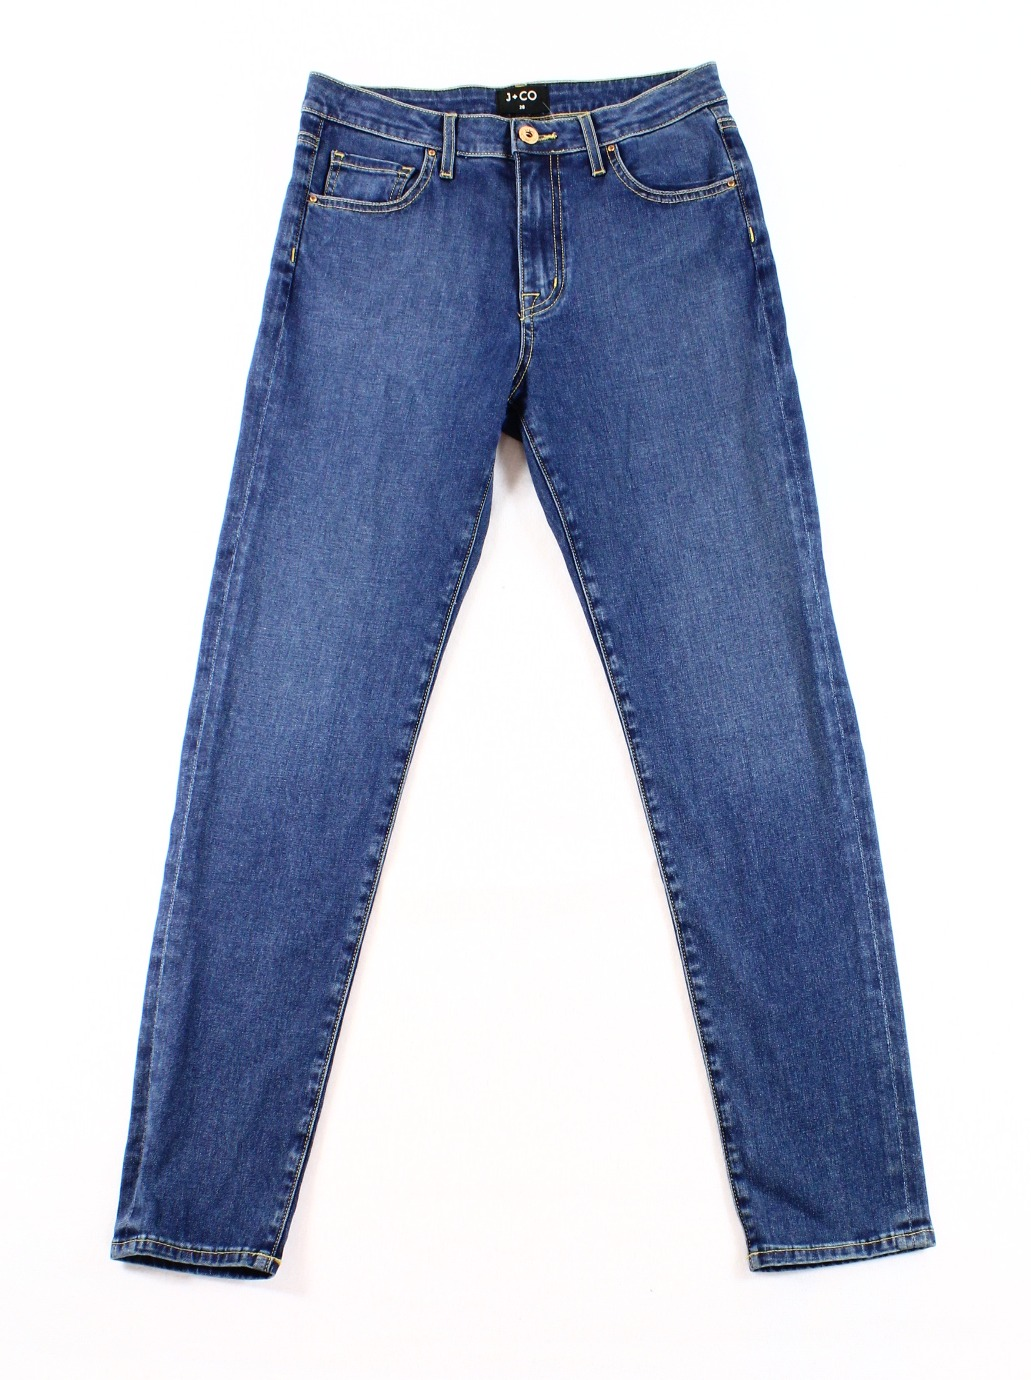 J-Co-NEW-Womens-Size-28X27-Crop-Ankle-Slim-Skinny-Denim-Jeans-98-DEAL